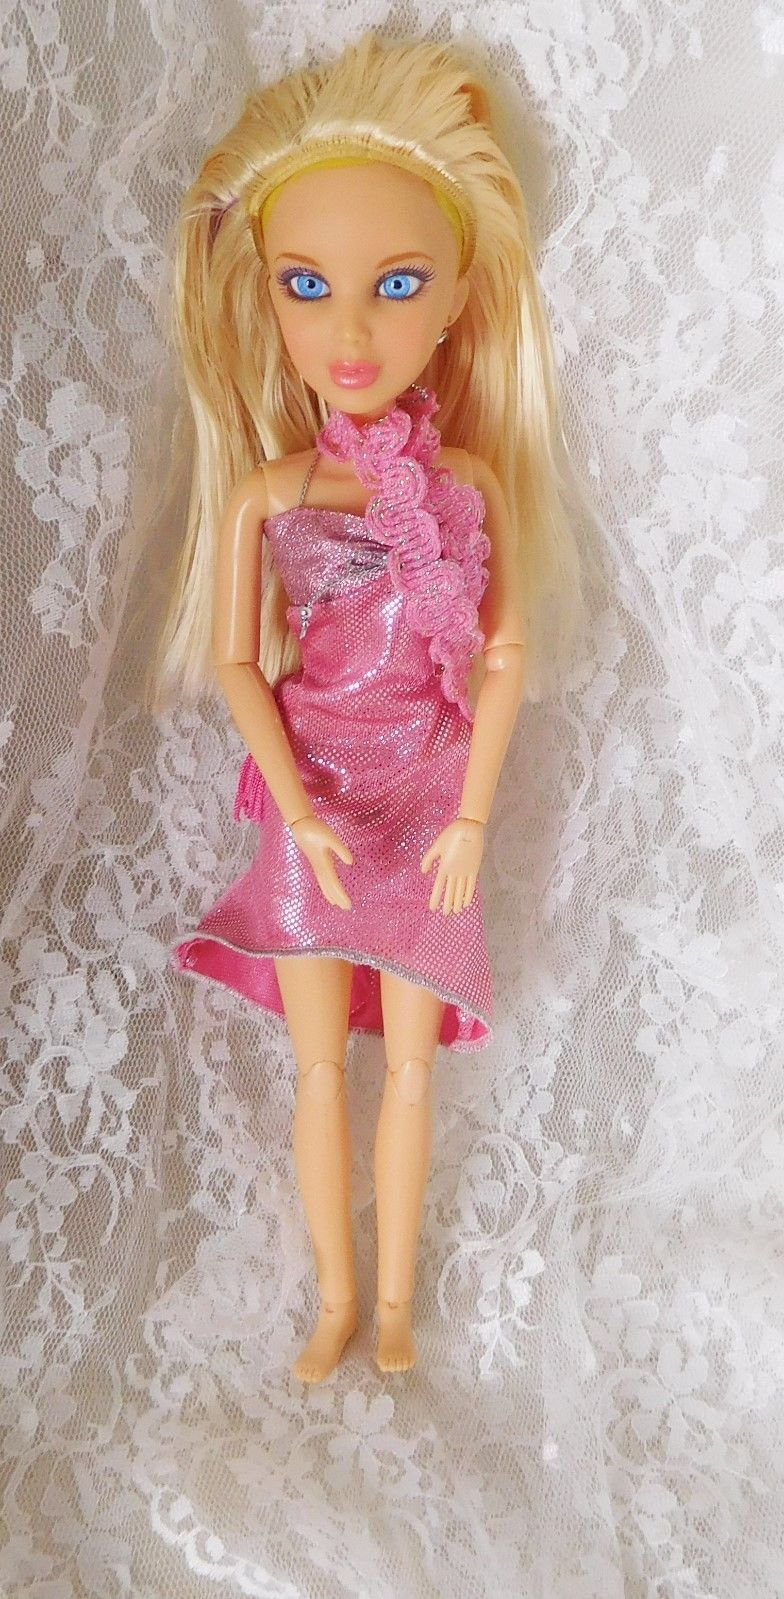 "Primary image for 2009 Spin Master Ltd LIV Doll 11 1/2"" with Wig & Outfit #90821SWMG"